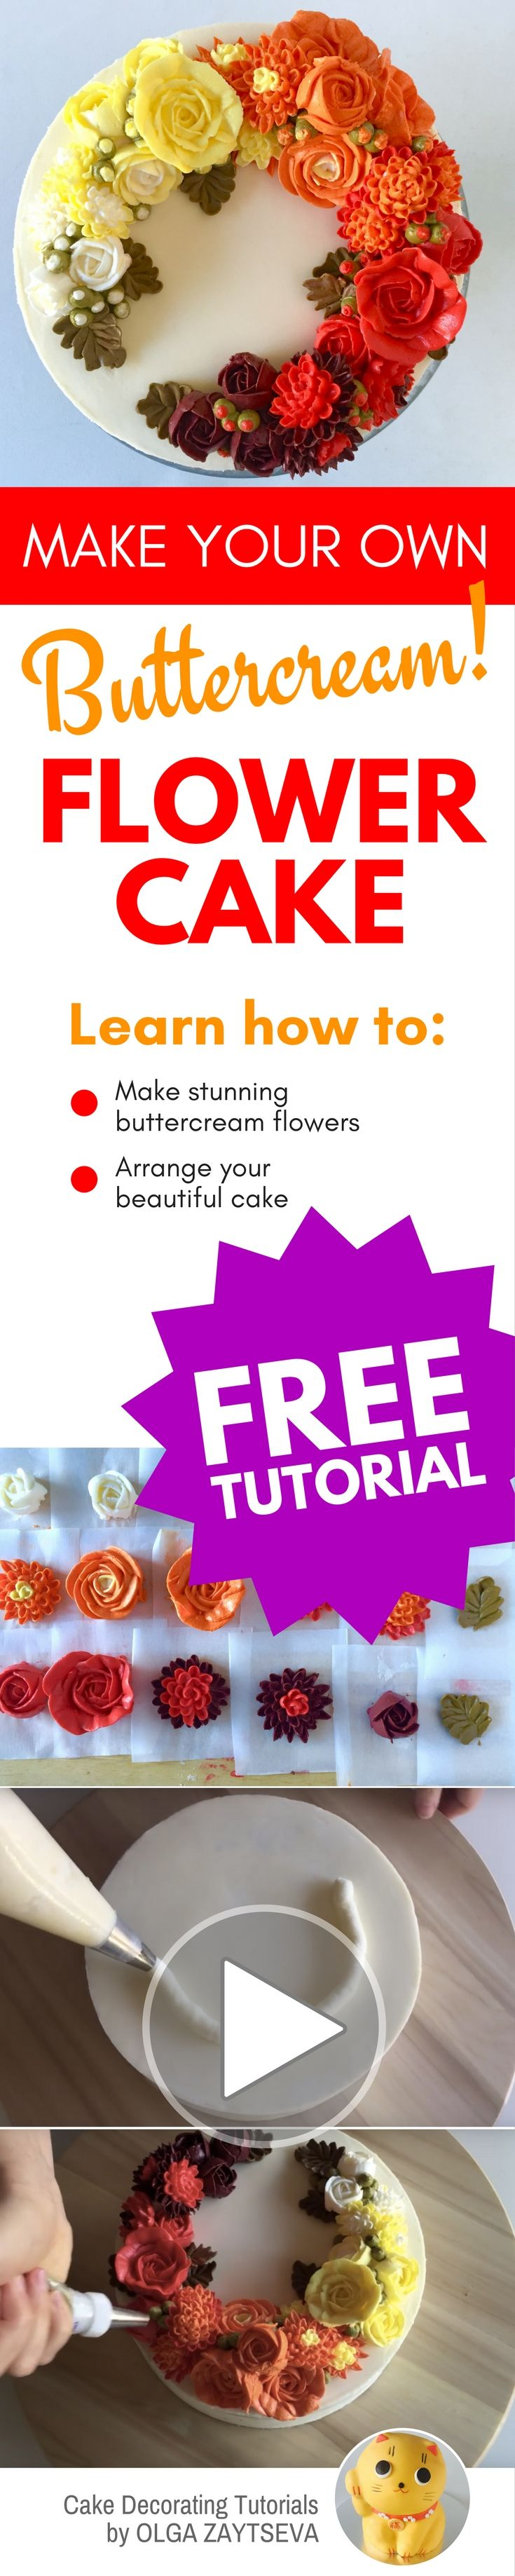 How to make Buttercream ombre roses and chrysanthemums cake - Cake decorating tutorial by Olga Zaytseva. Learn how to make buttercream roses, pipe chrysanthemums and create this Autumnal floral wreath cake with ombre effect. #cakedecorating #cakedecoratingtutorial #buttercreamflowercake #buttercreamflowers